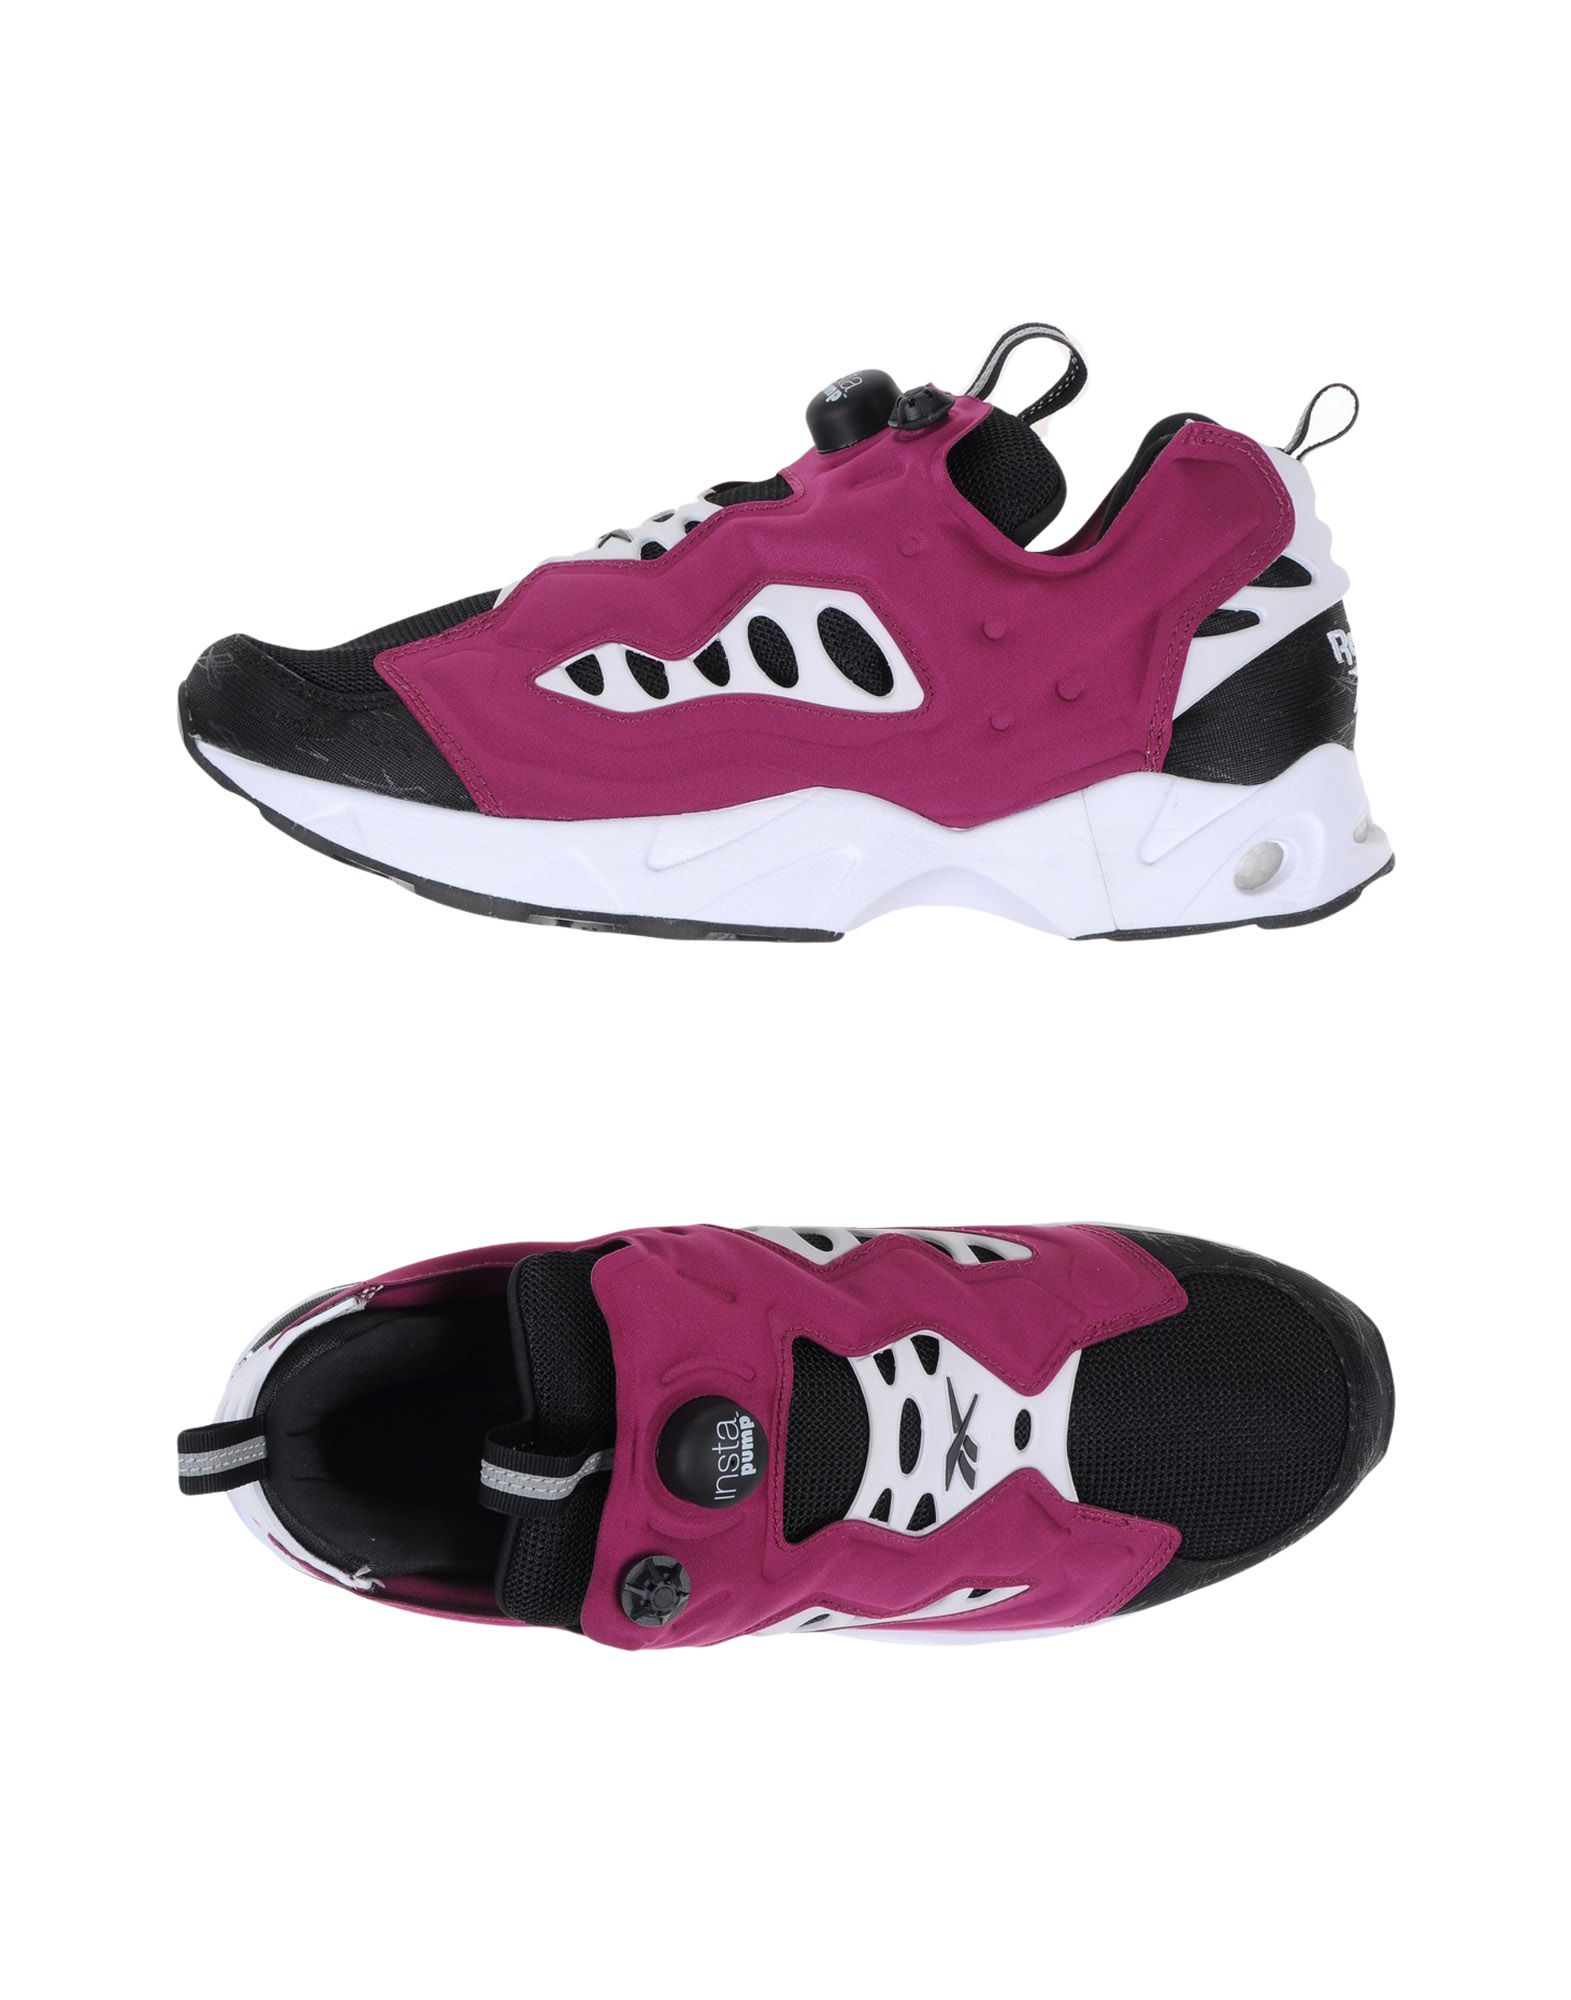 Reebok Instapump Fury Men Road - Sneakers - Men Fury Reebok Sneakers online on  Australia - 44969903DW 83267c